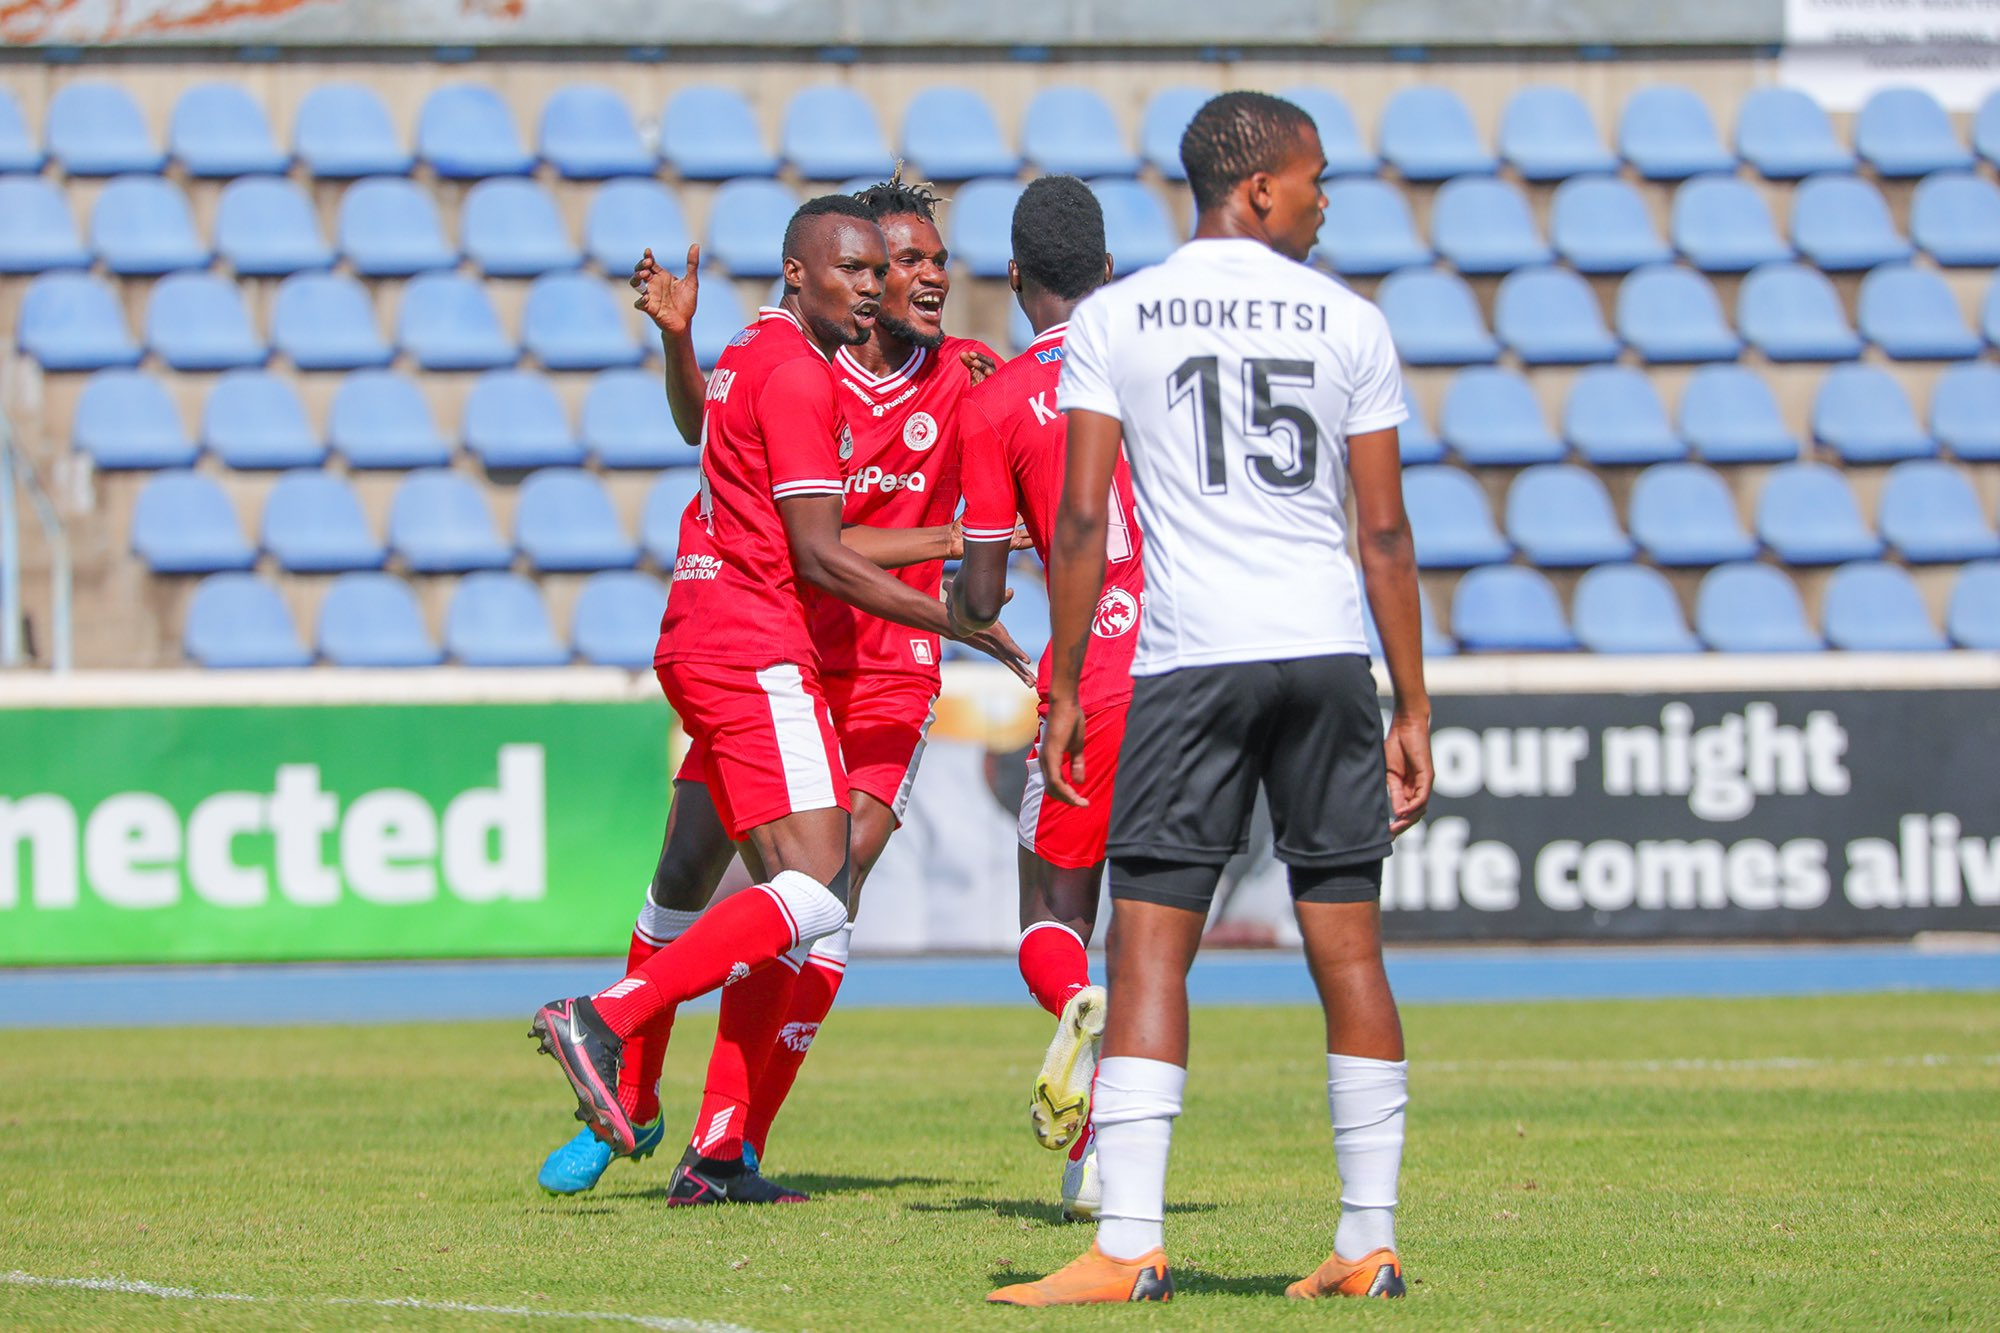 Gomes lauds players maturity